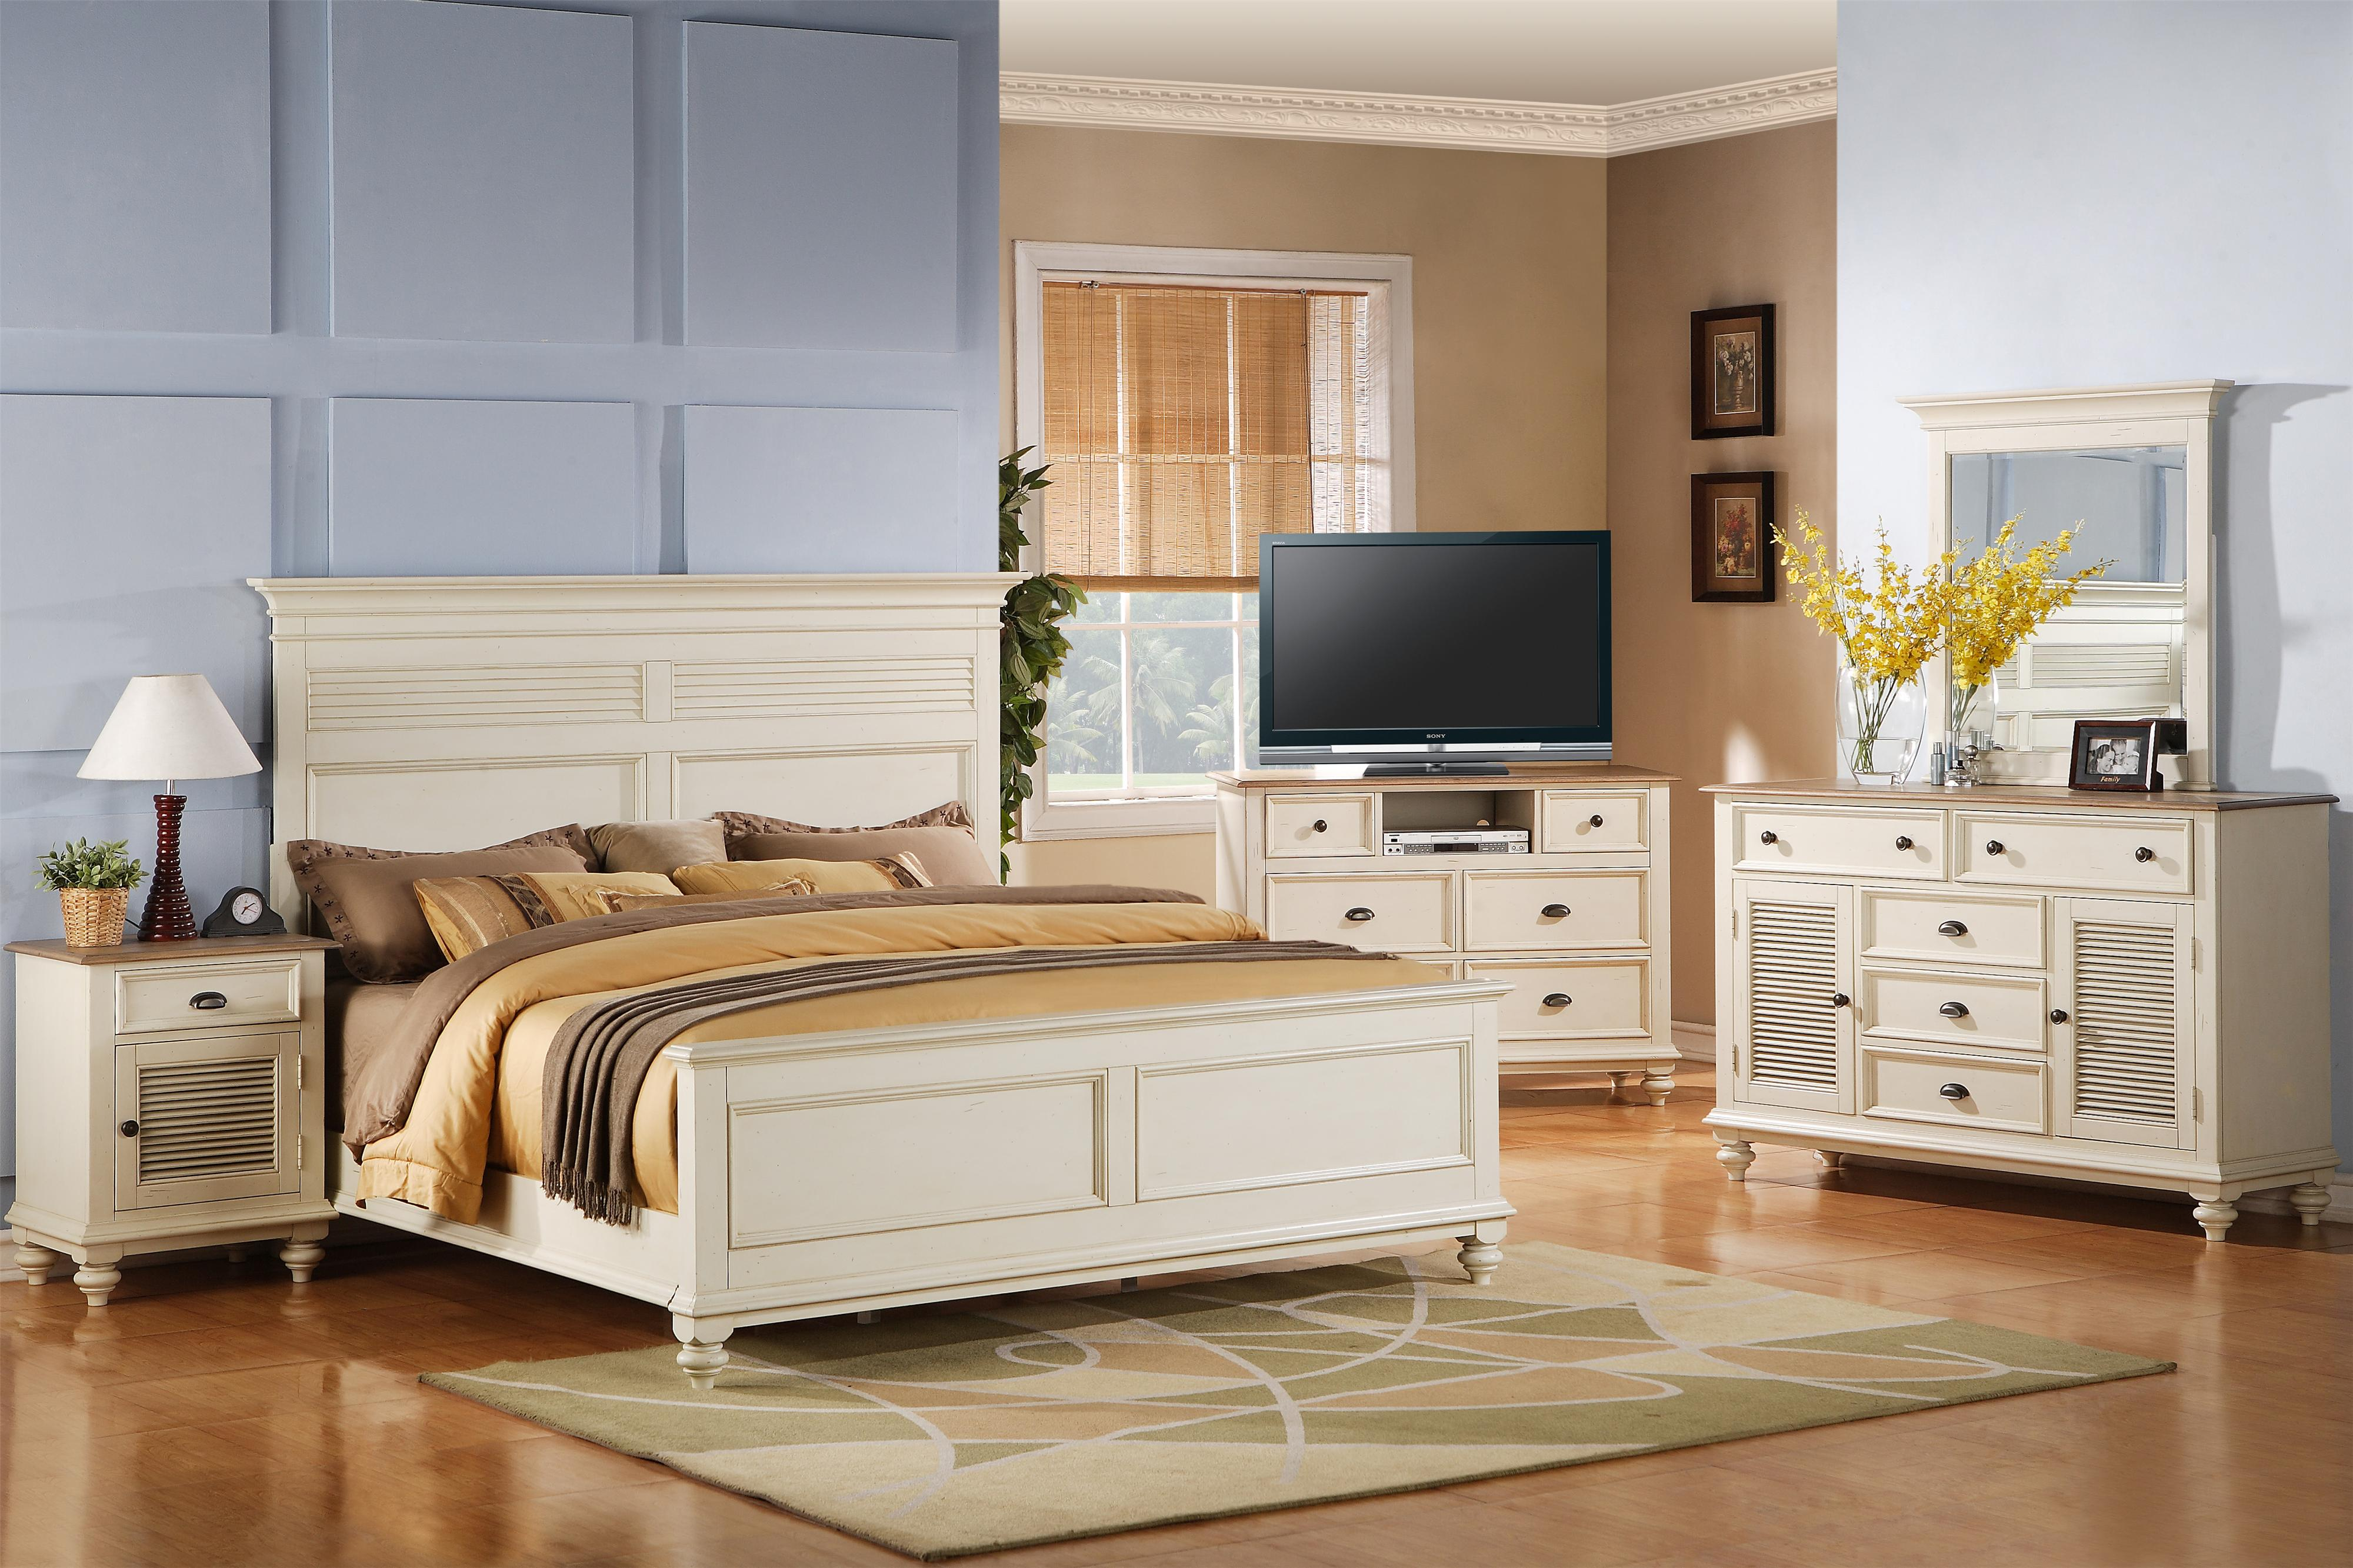 Riverside Furniture Coventry Two Tone Full/Queen Bedroom Group - Item Number: 32500 F Q Bedroom Group 16